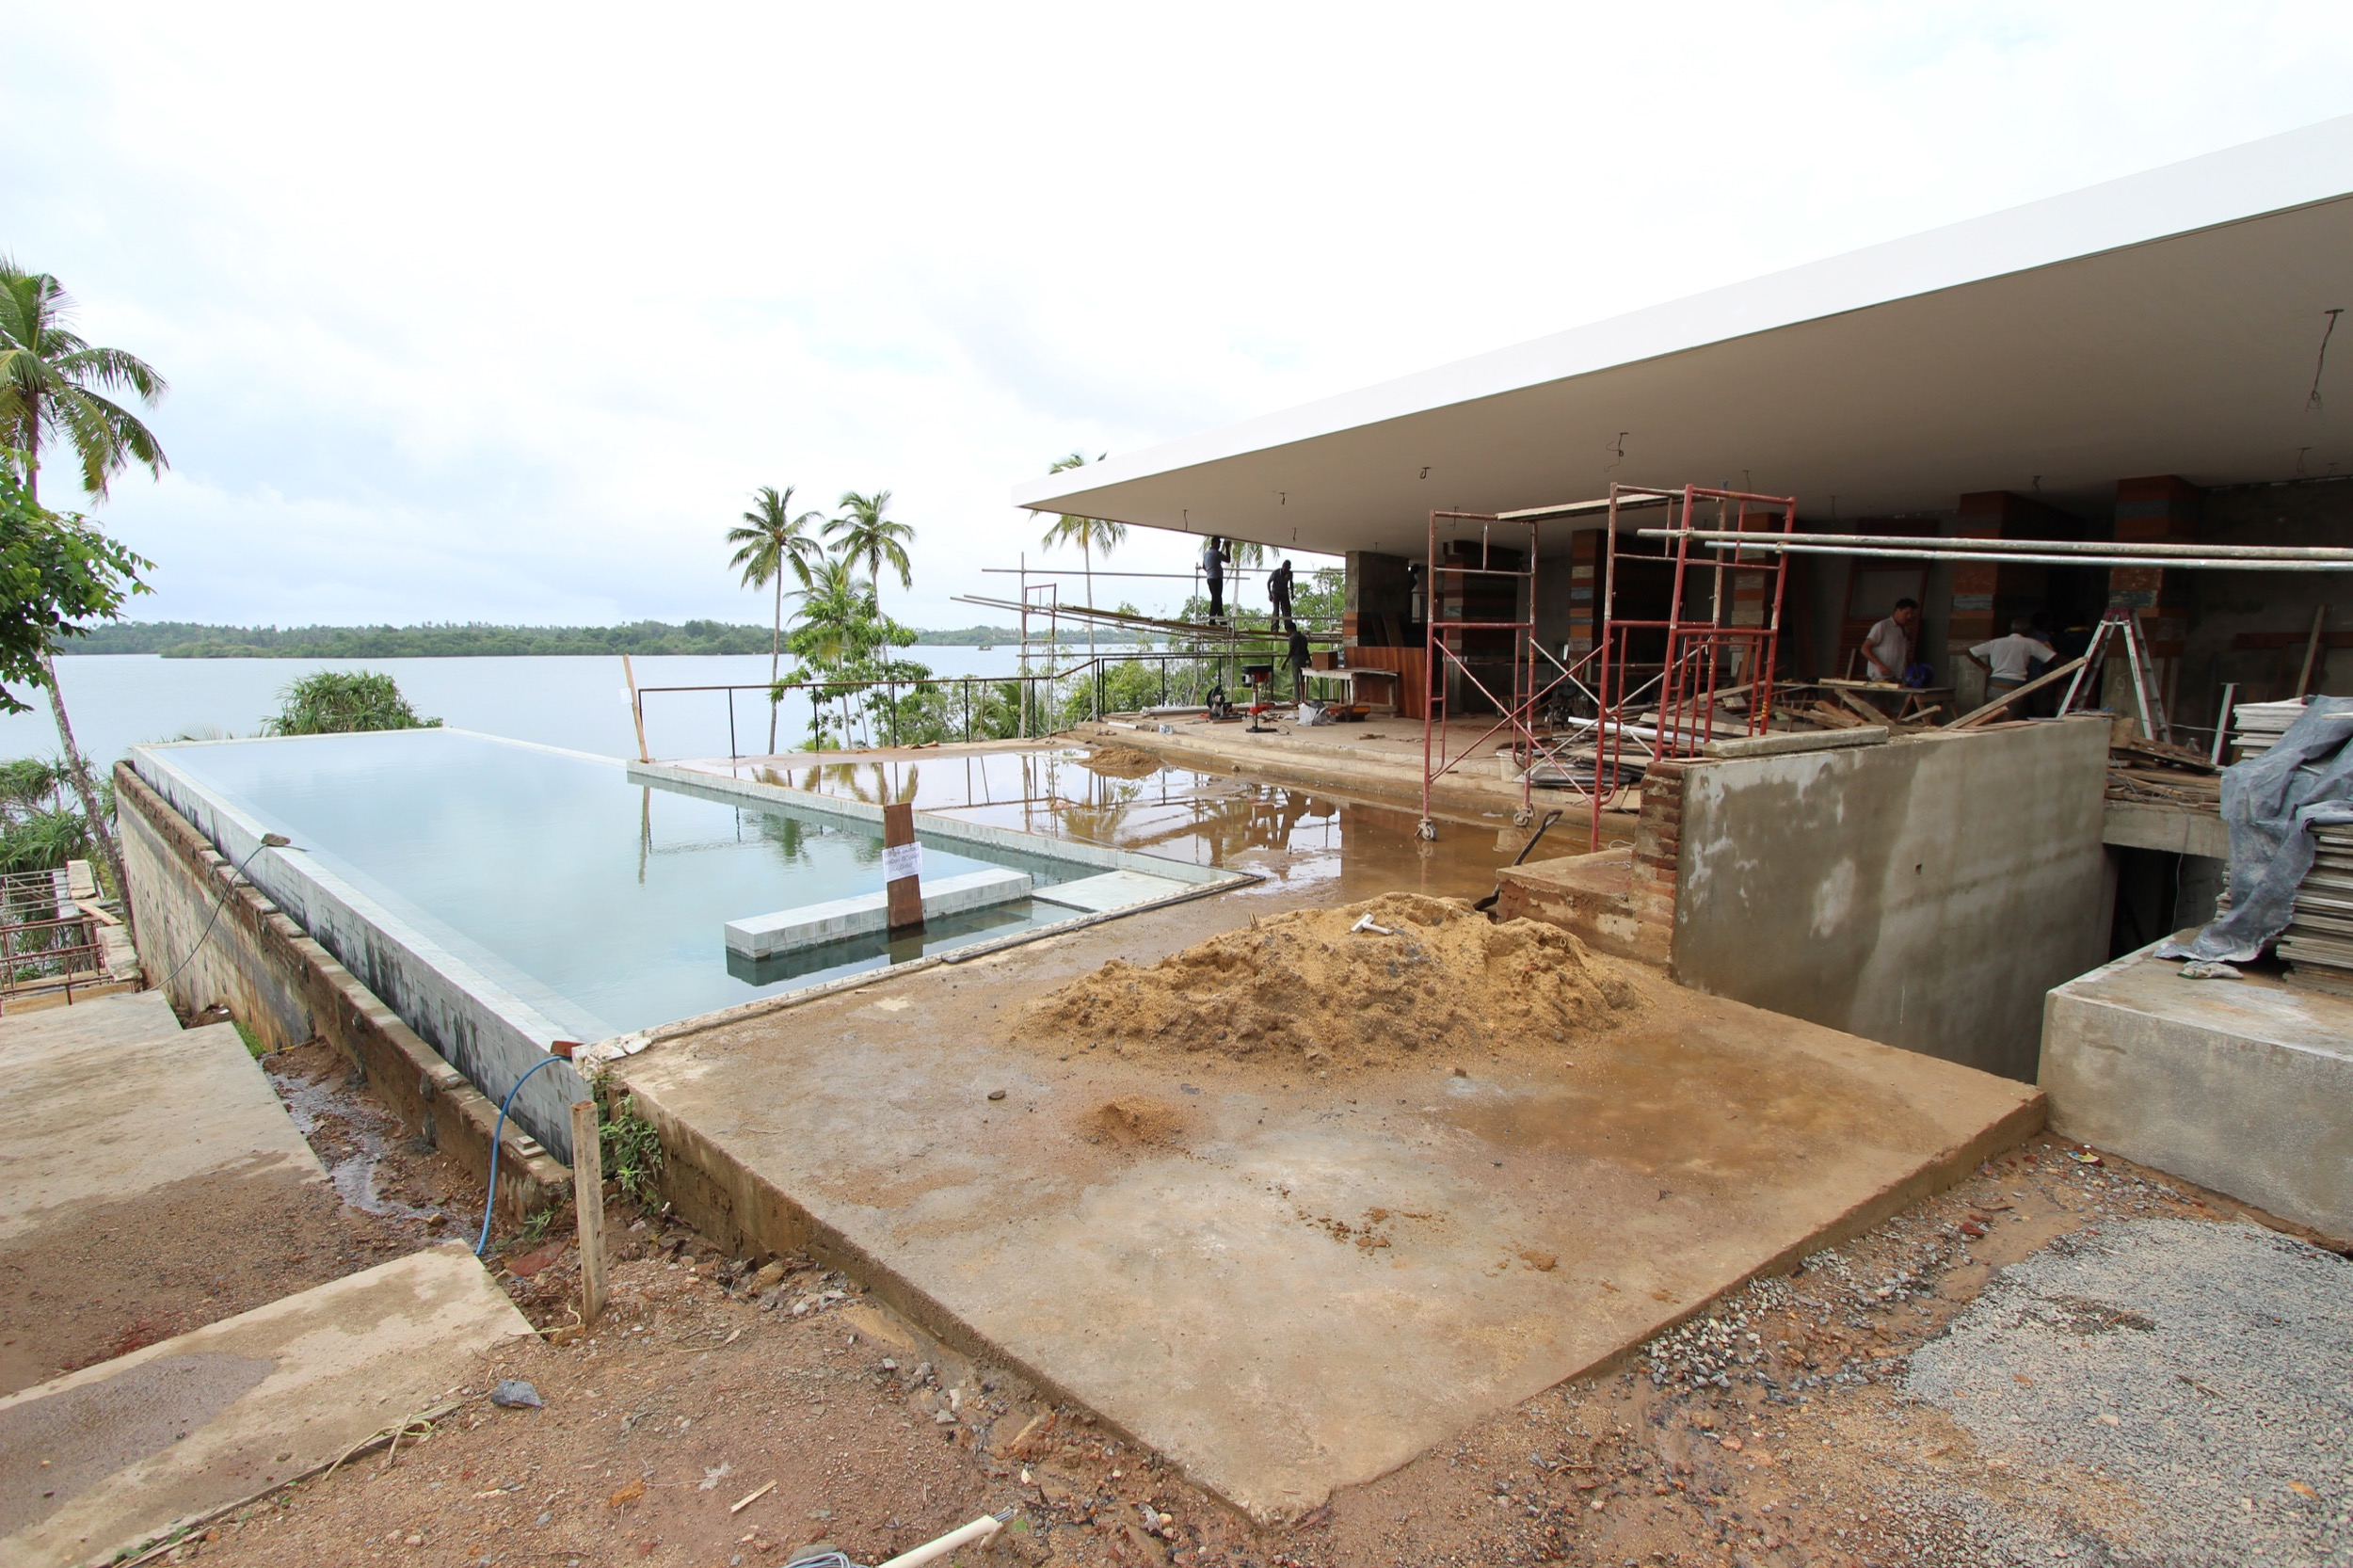 Main house with the infiniti pool almost finished. Columns getting clad in reclaimed wood.